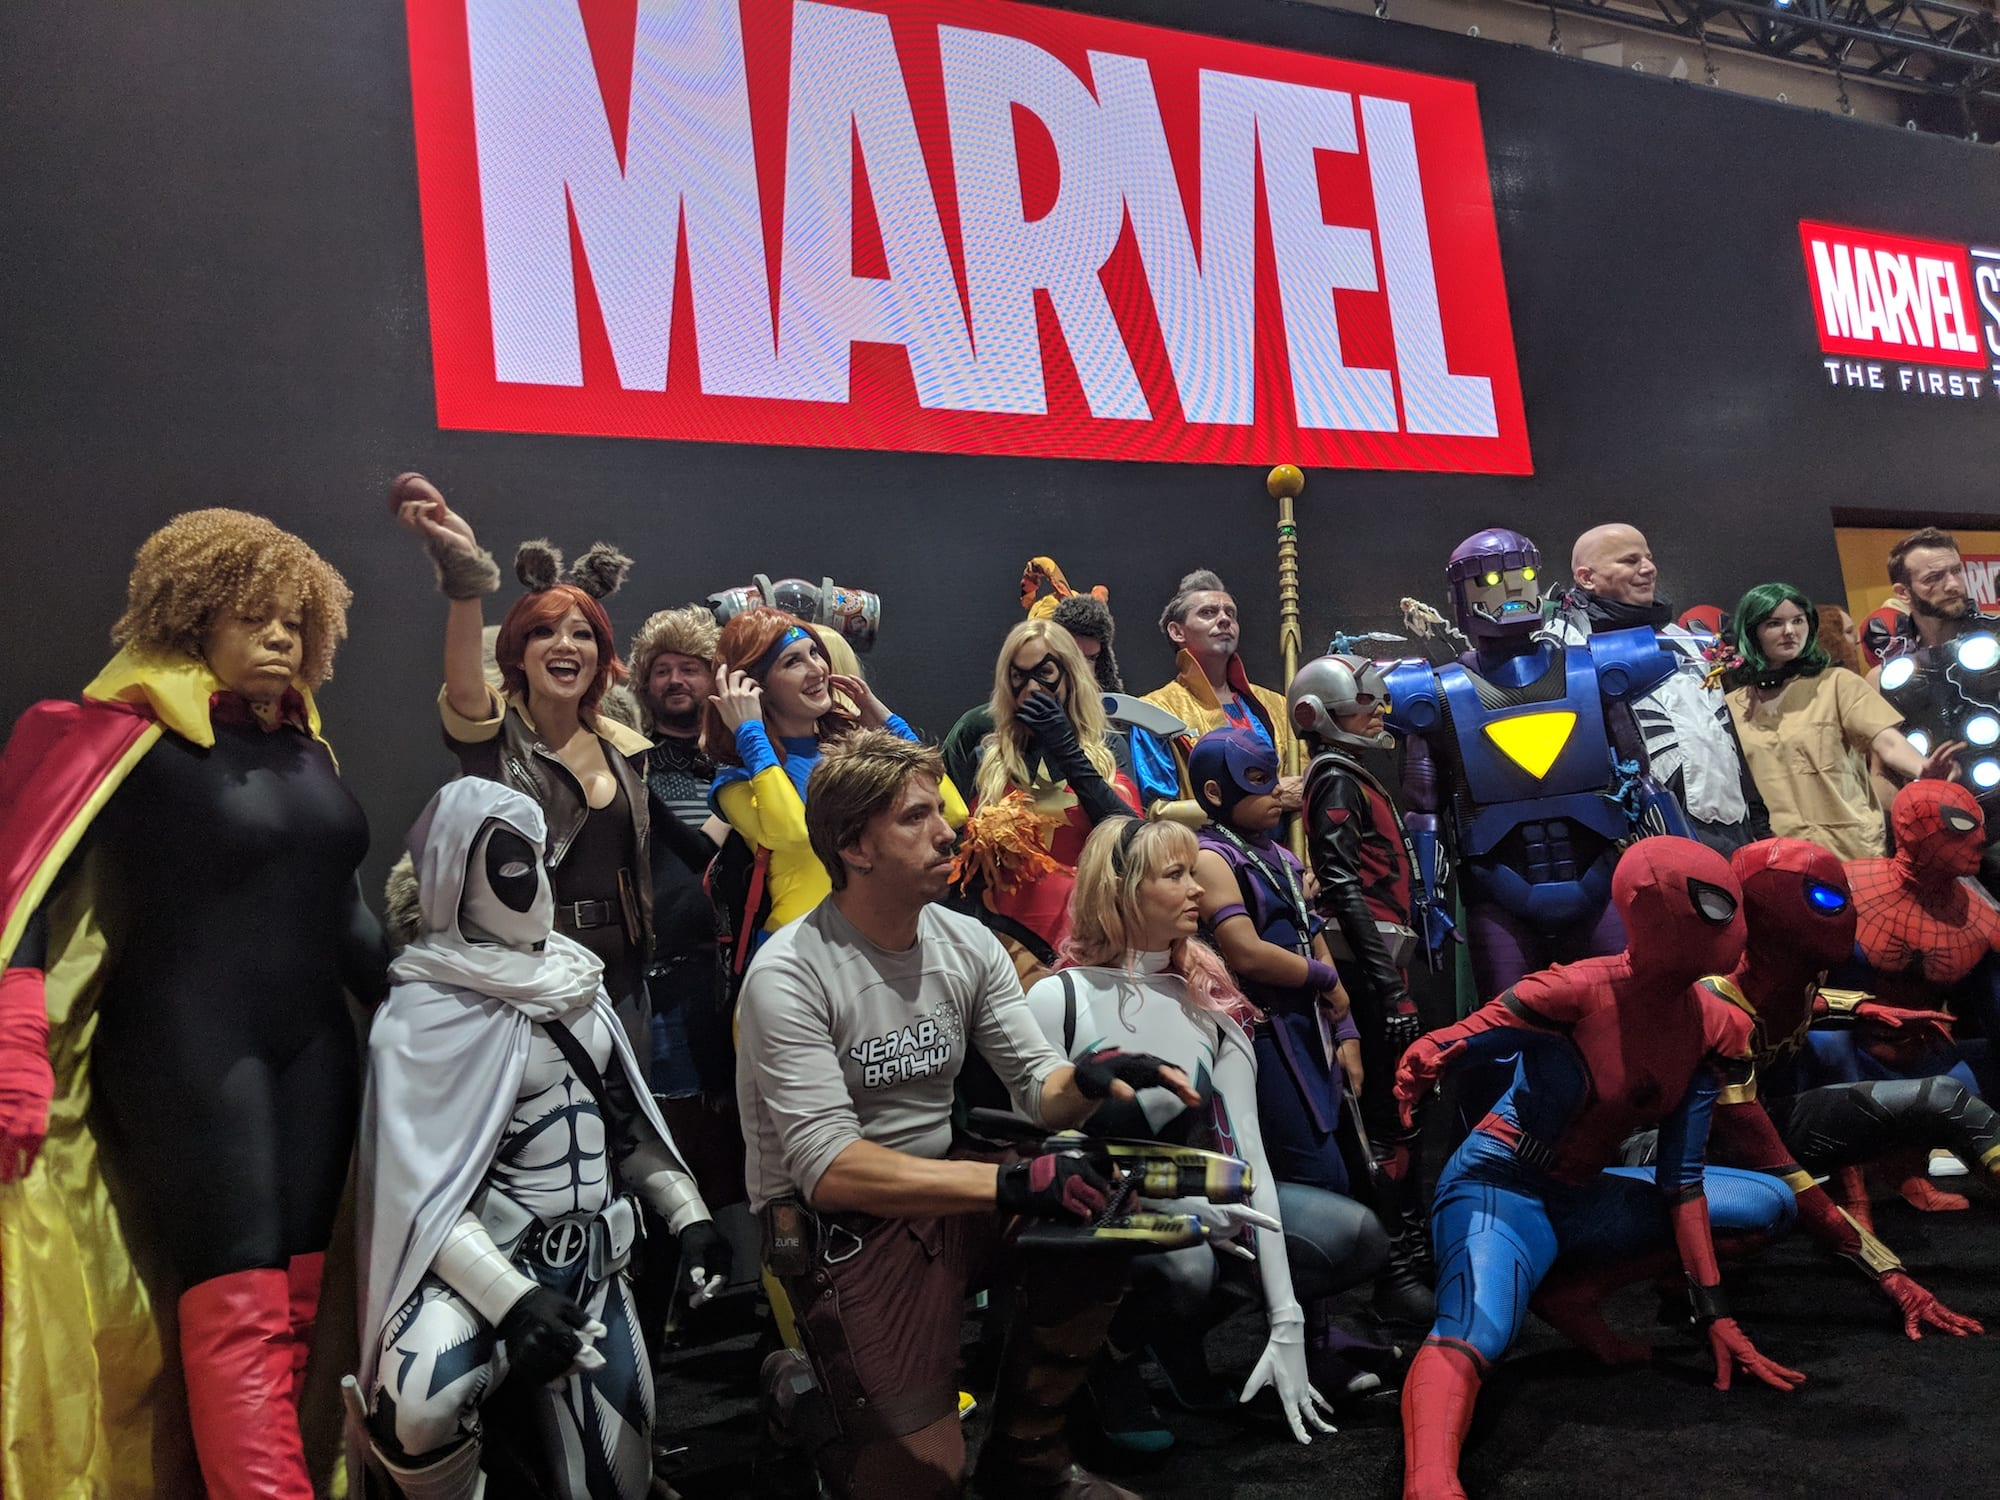 The San Diego Comic-Con is gone for another year, but we're basking in its multi-genre glory. Our trip to the event as an SDCC cosplayer was memorable.